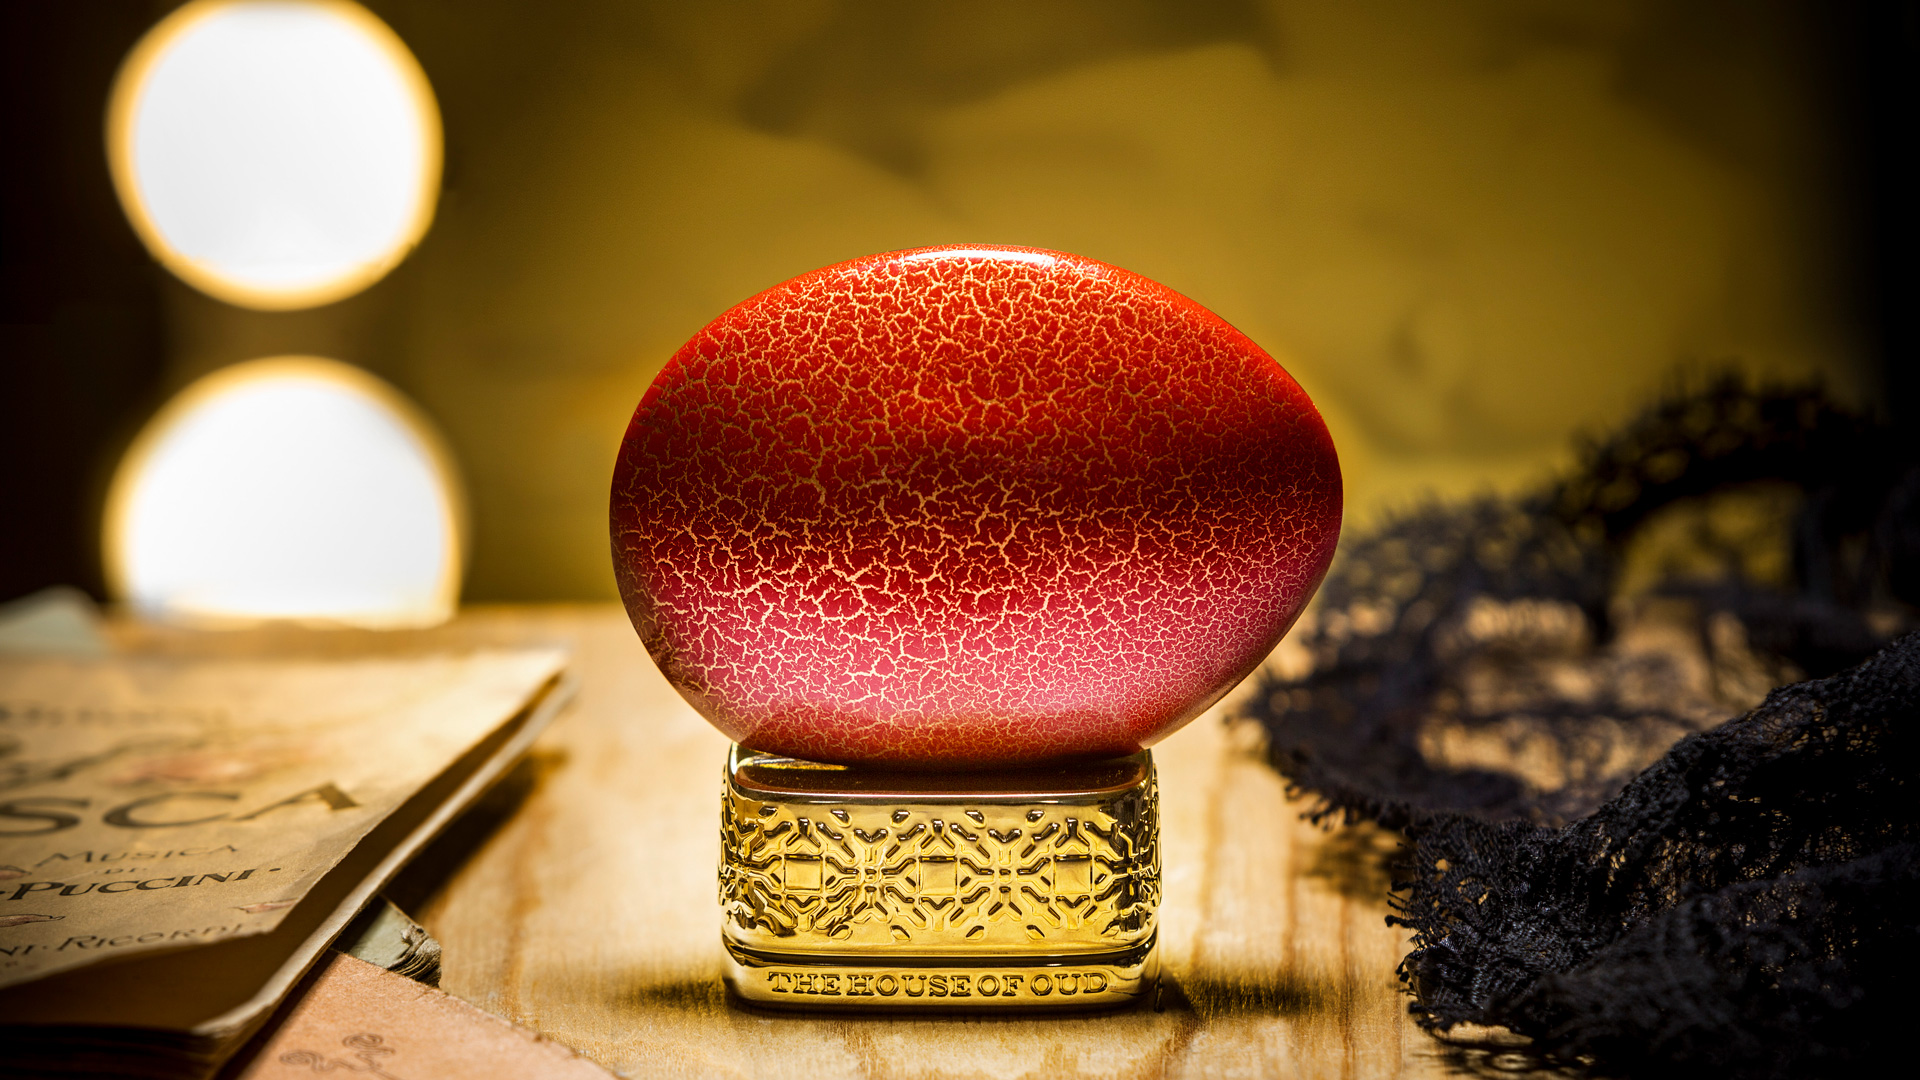 rocknrouge-the-house-of-oud-special-edition-jovoy